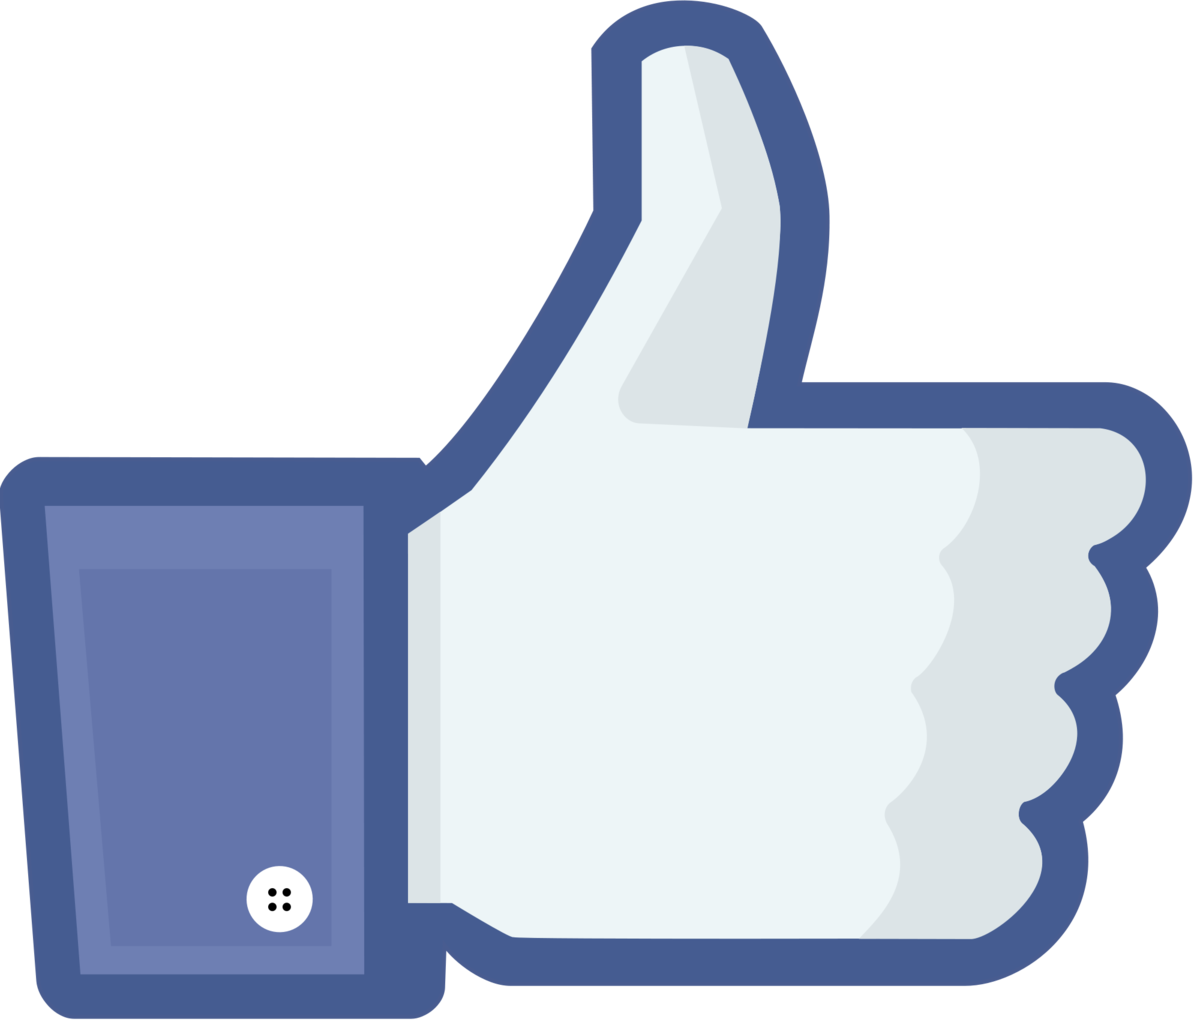 Facebook thumbs up clipart image royalty free stock Like button - Wikipedia image royalty free stock